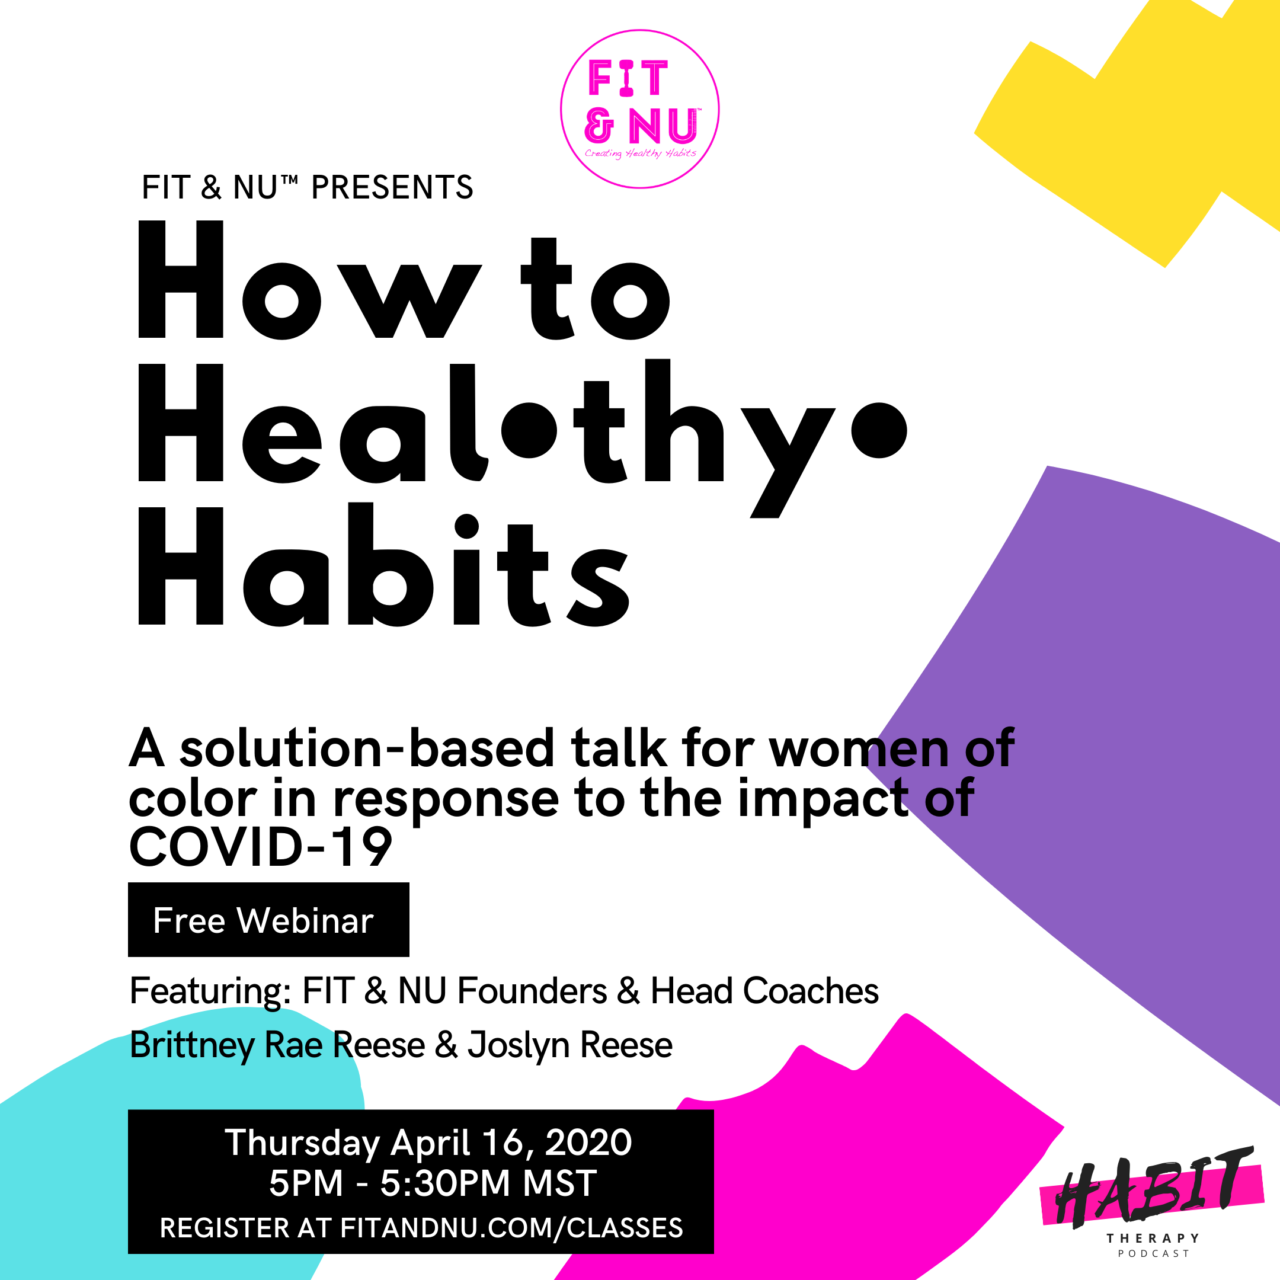 How-to-Heal•thy•Habits-A-solution-based-talk-in-response-to-the-impact-of-COVID-19-on-people-of-color-1280x1280.png